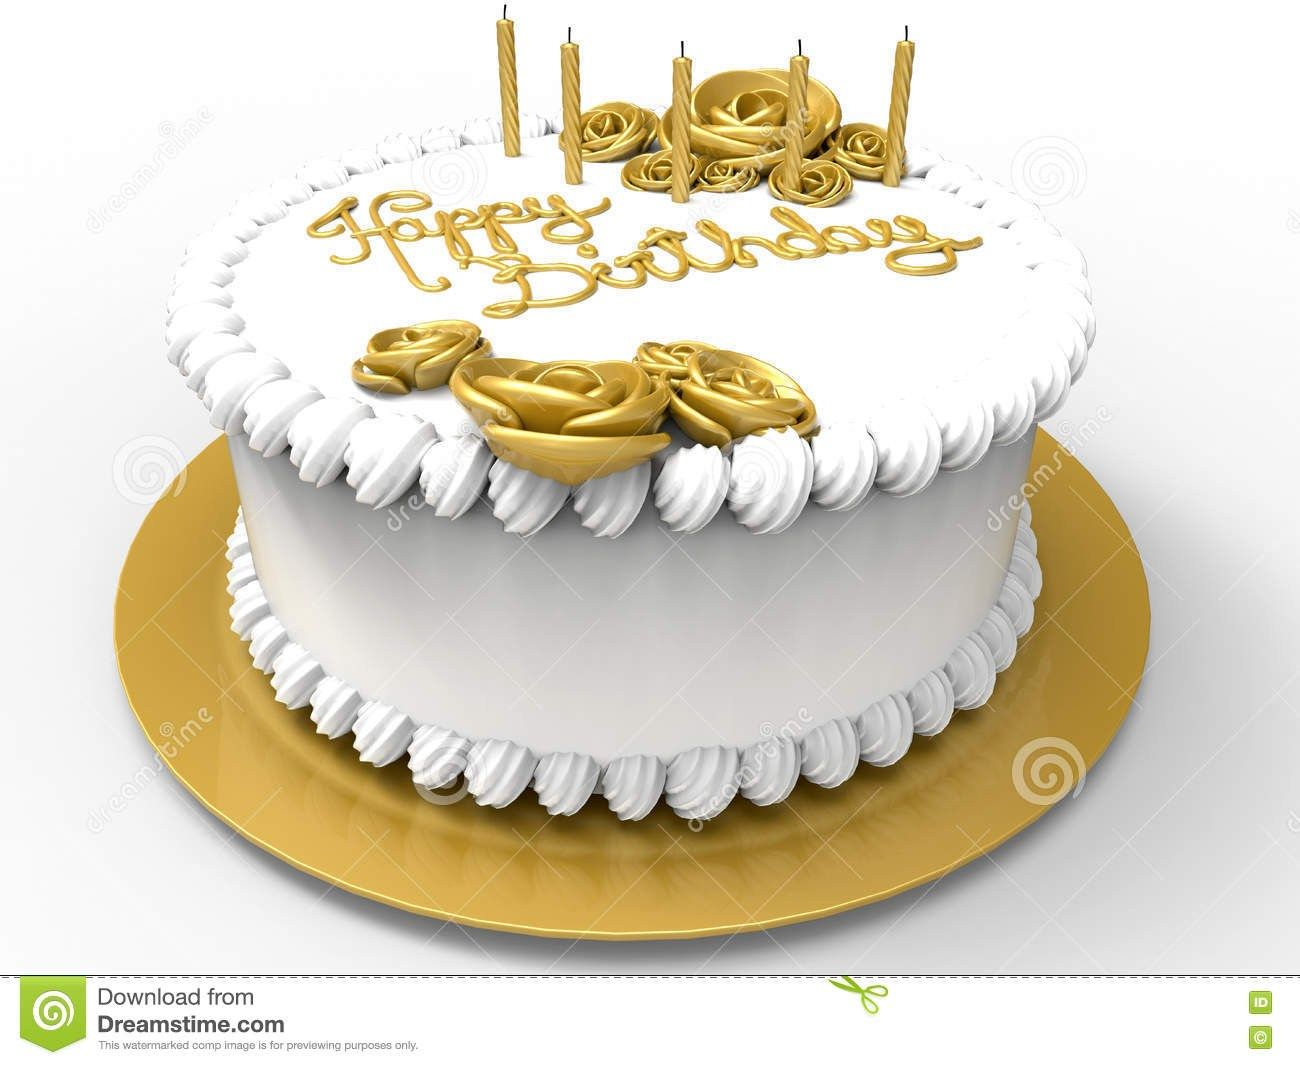 30 Great Image Of Happy Birthday Cake Text Stock Illustration White 76487449